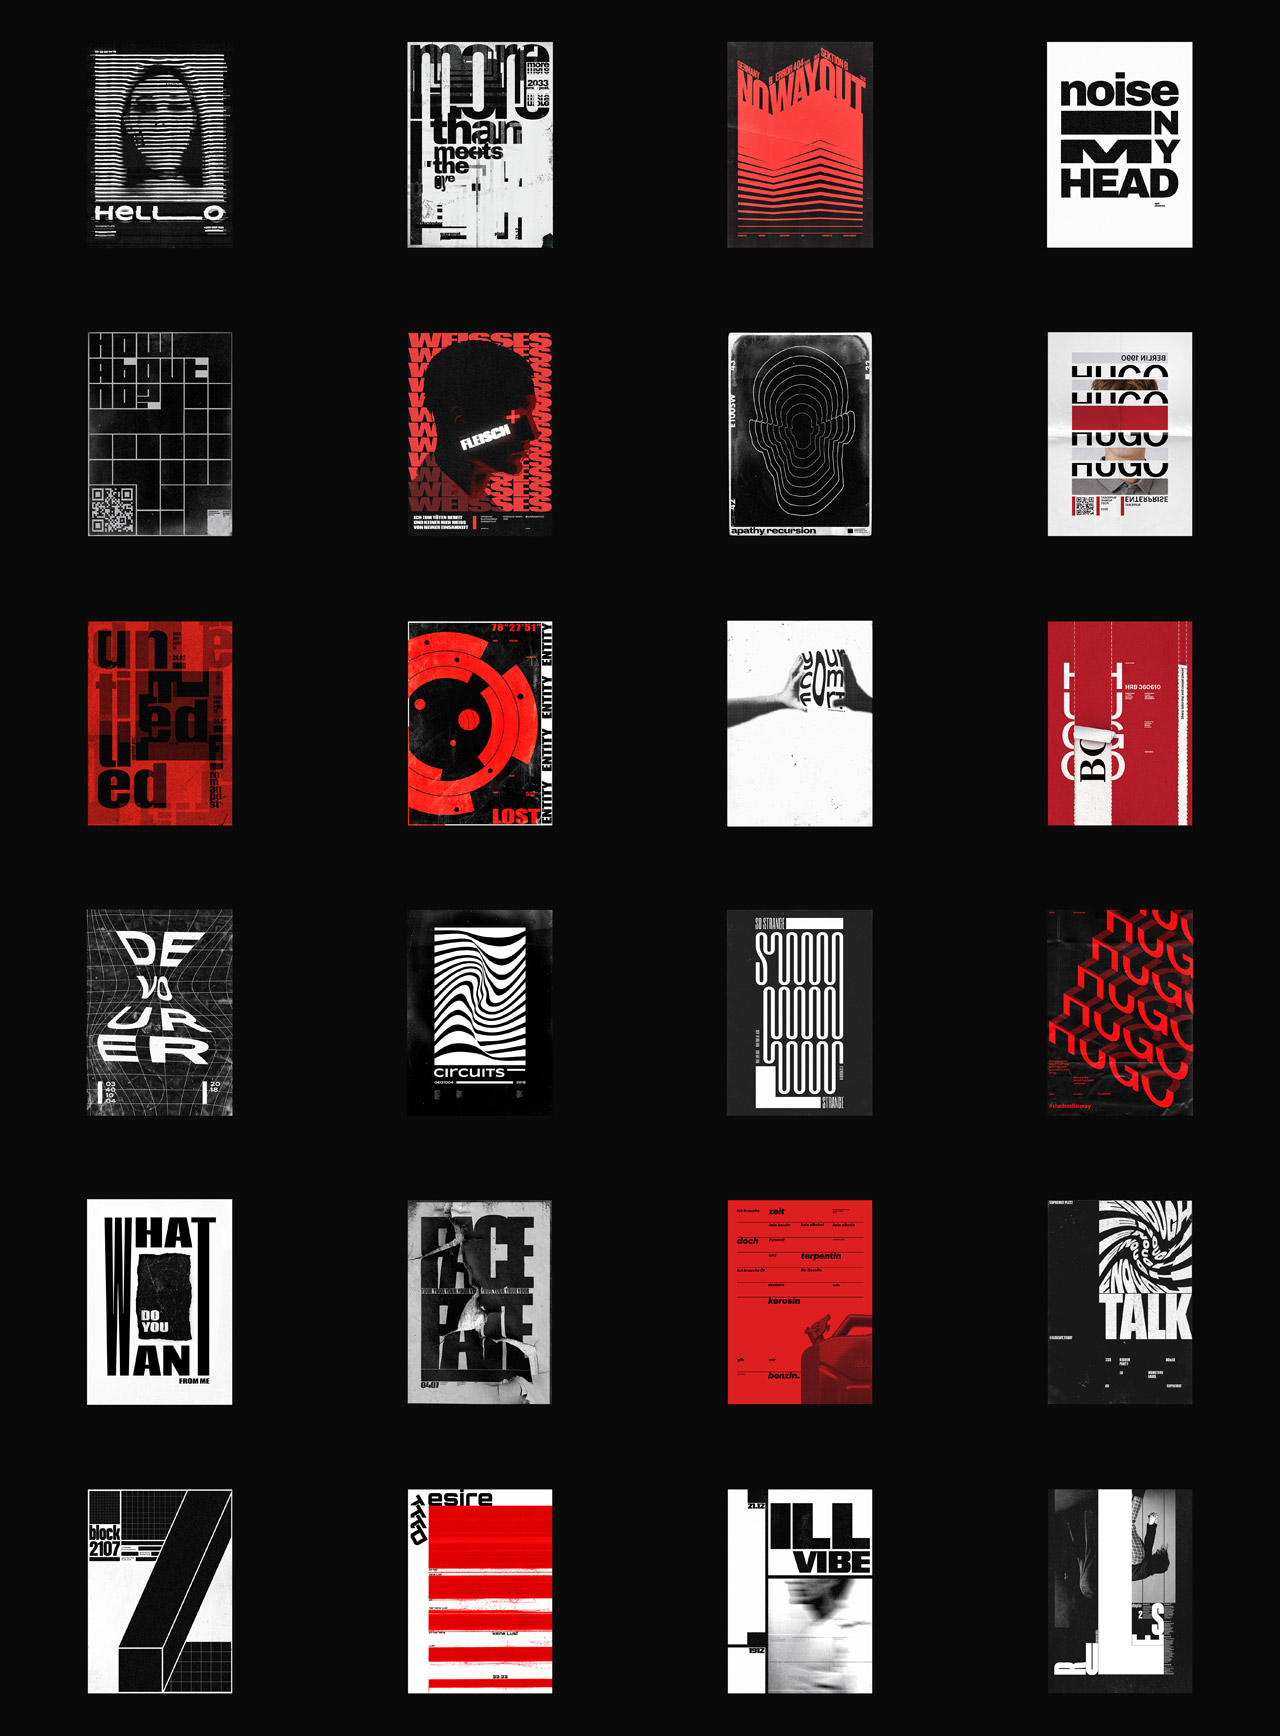 Poster designs by Roman Post.